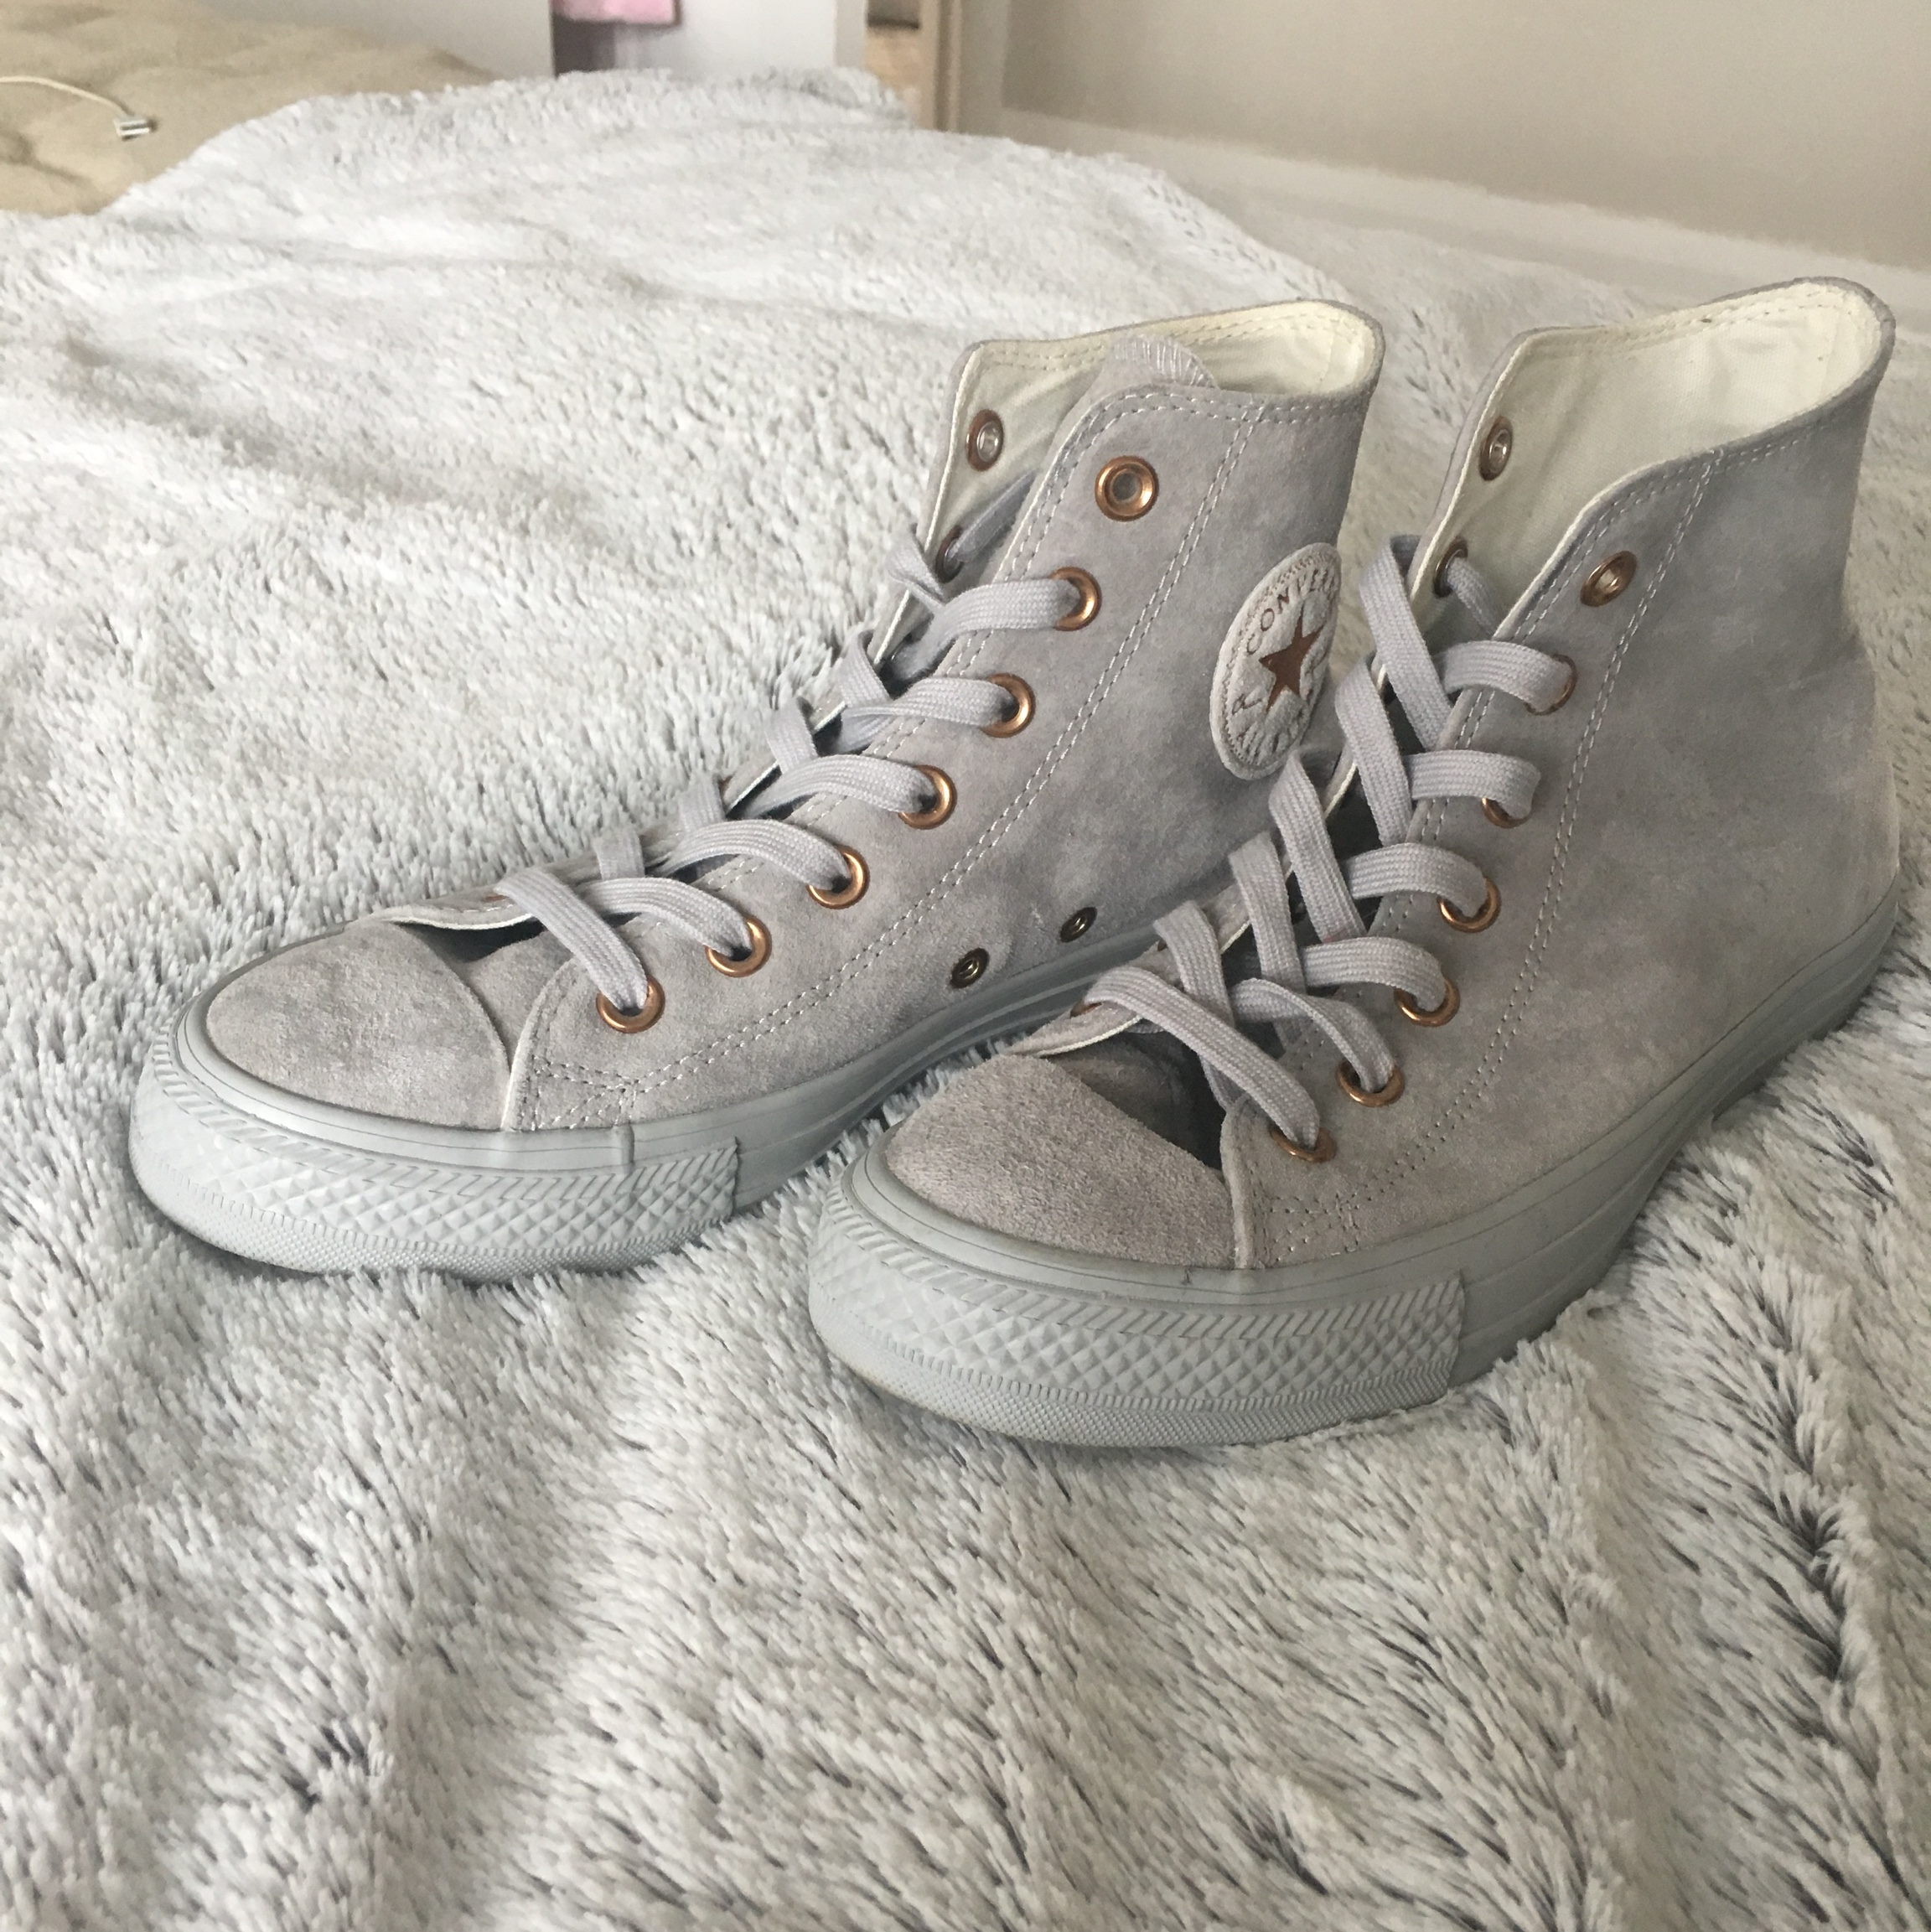 Rose gold and grey suede converse high